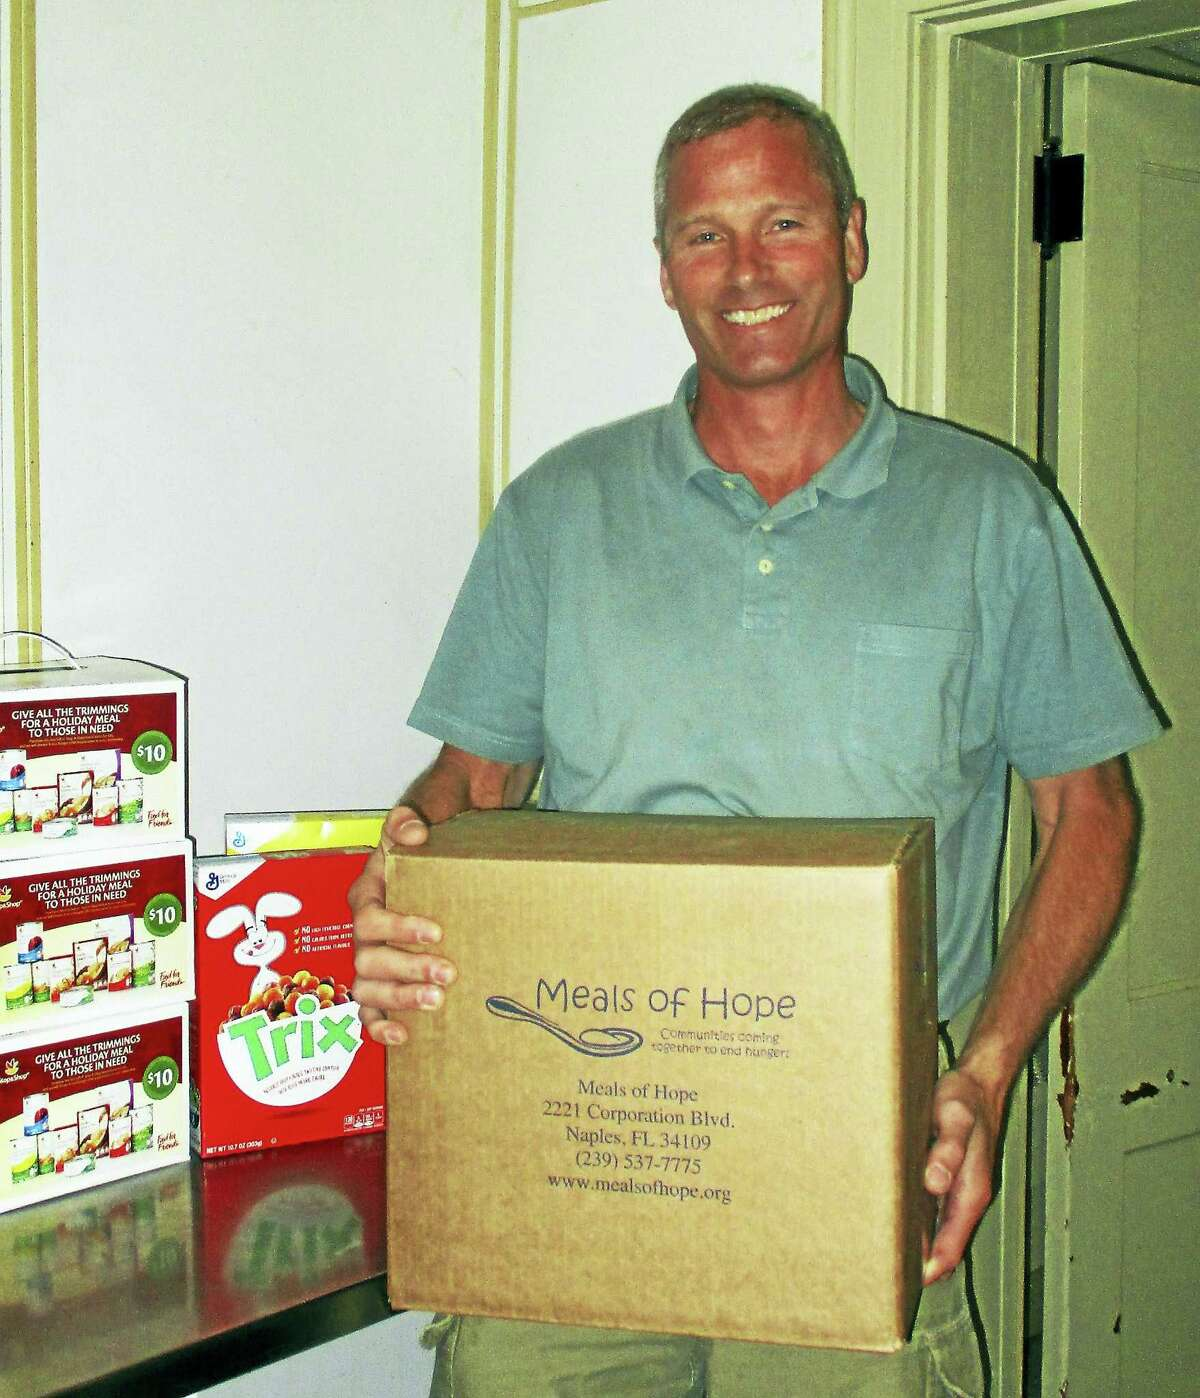 Morris First Selectman Tom Weik, shown helping out at the town's food pantry, is running for a second term in November.